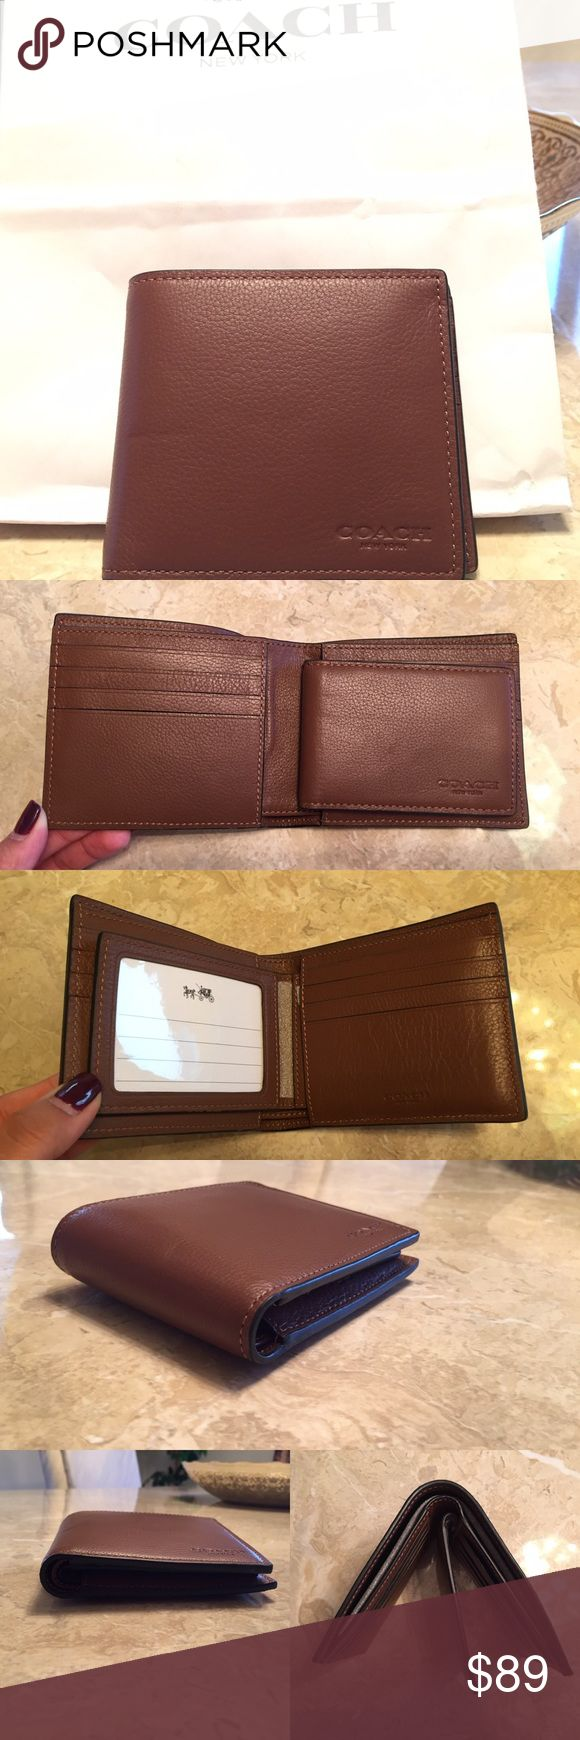 SALECOACH Leather Men's Wallet SALE FOR SUNDAY ONLYPRICE IS FIRM ❌ NO TRADES❌ BRAND NEW NWT authentic Coach Men's Leather Wallet in Cognac color! Comes with multiple credit card slots, ID slot holder, & two cash compartments. Comes with COACH gift box. Coach Bags Wallets